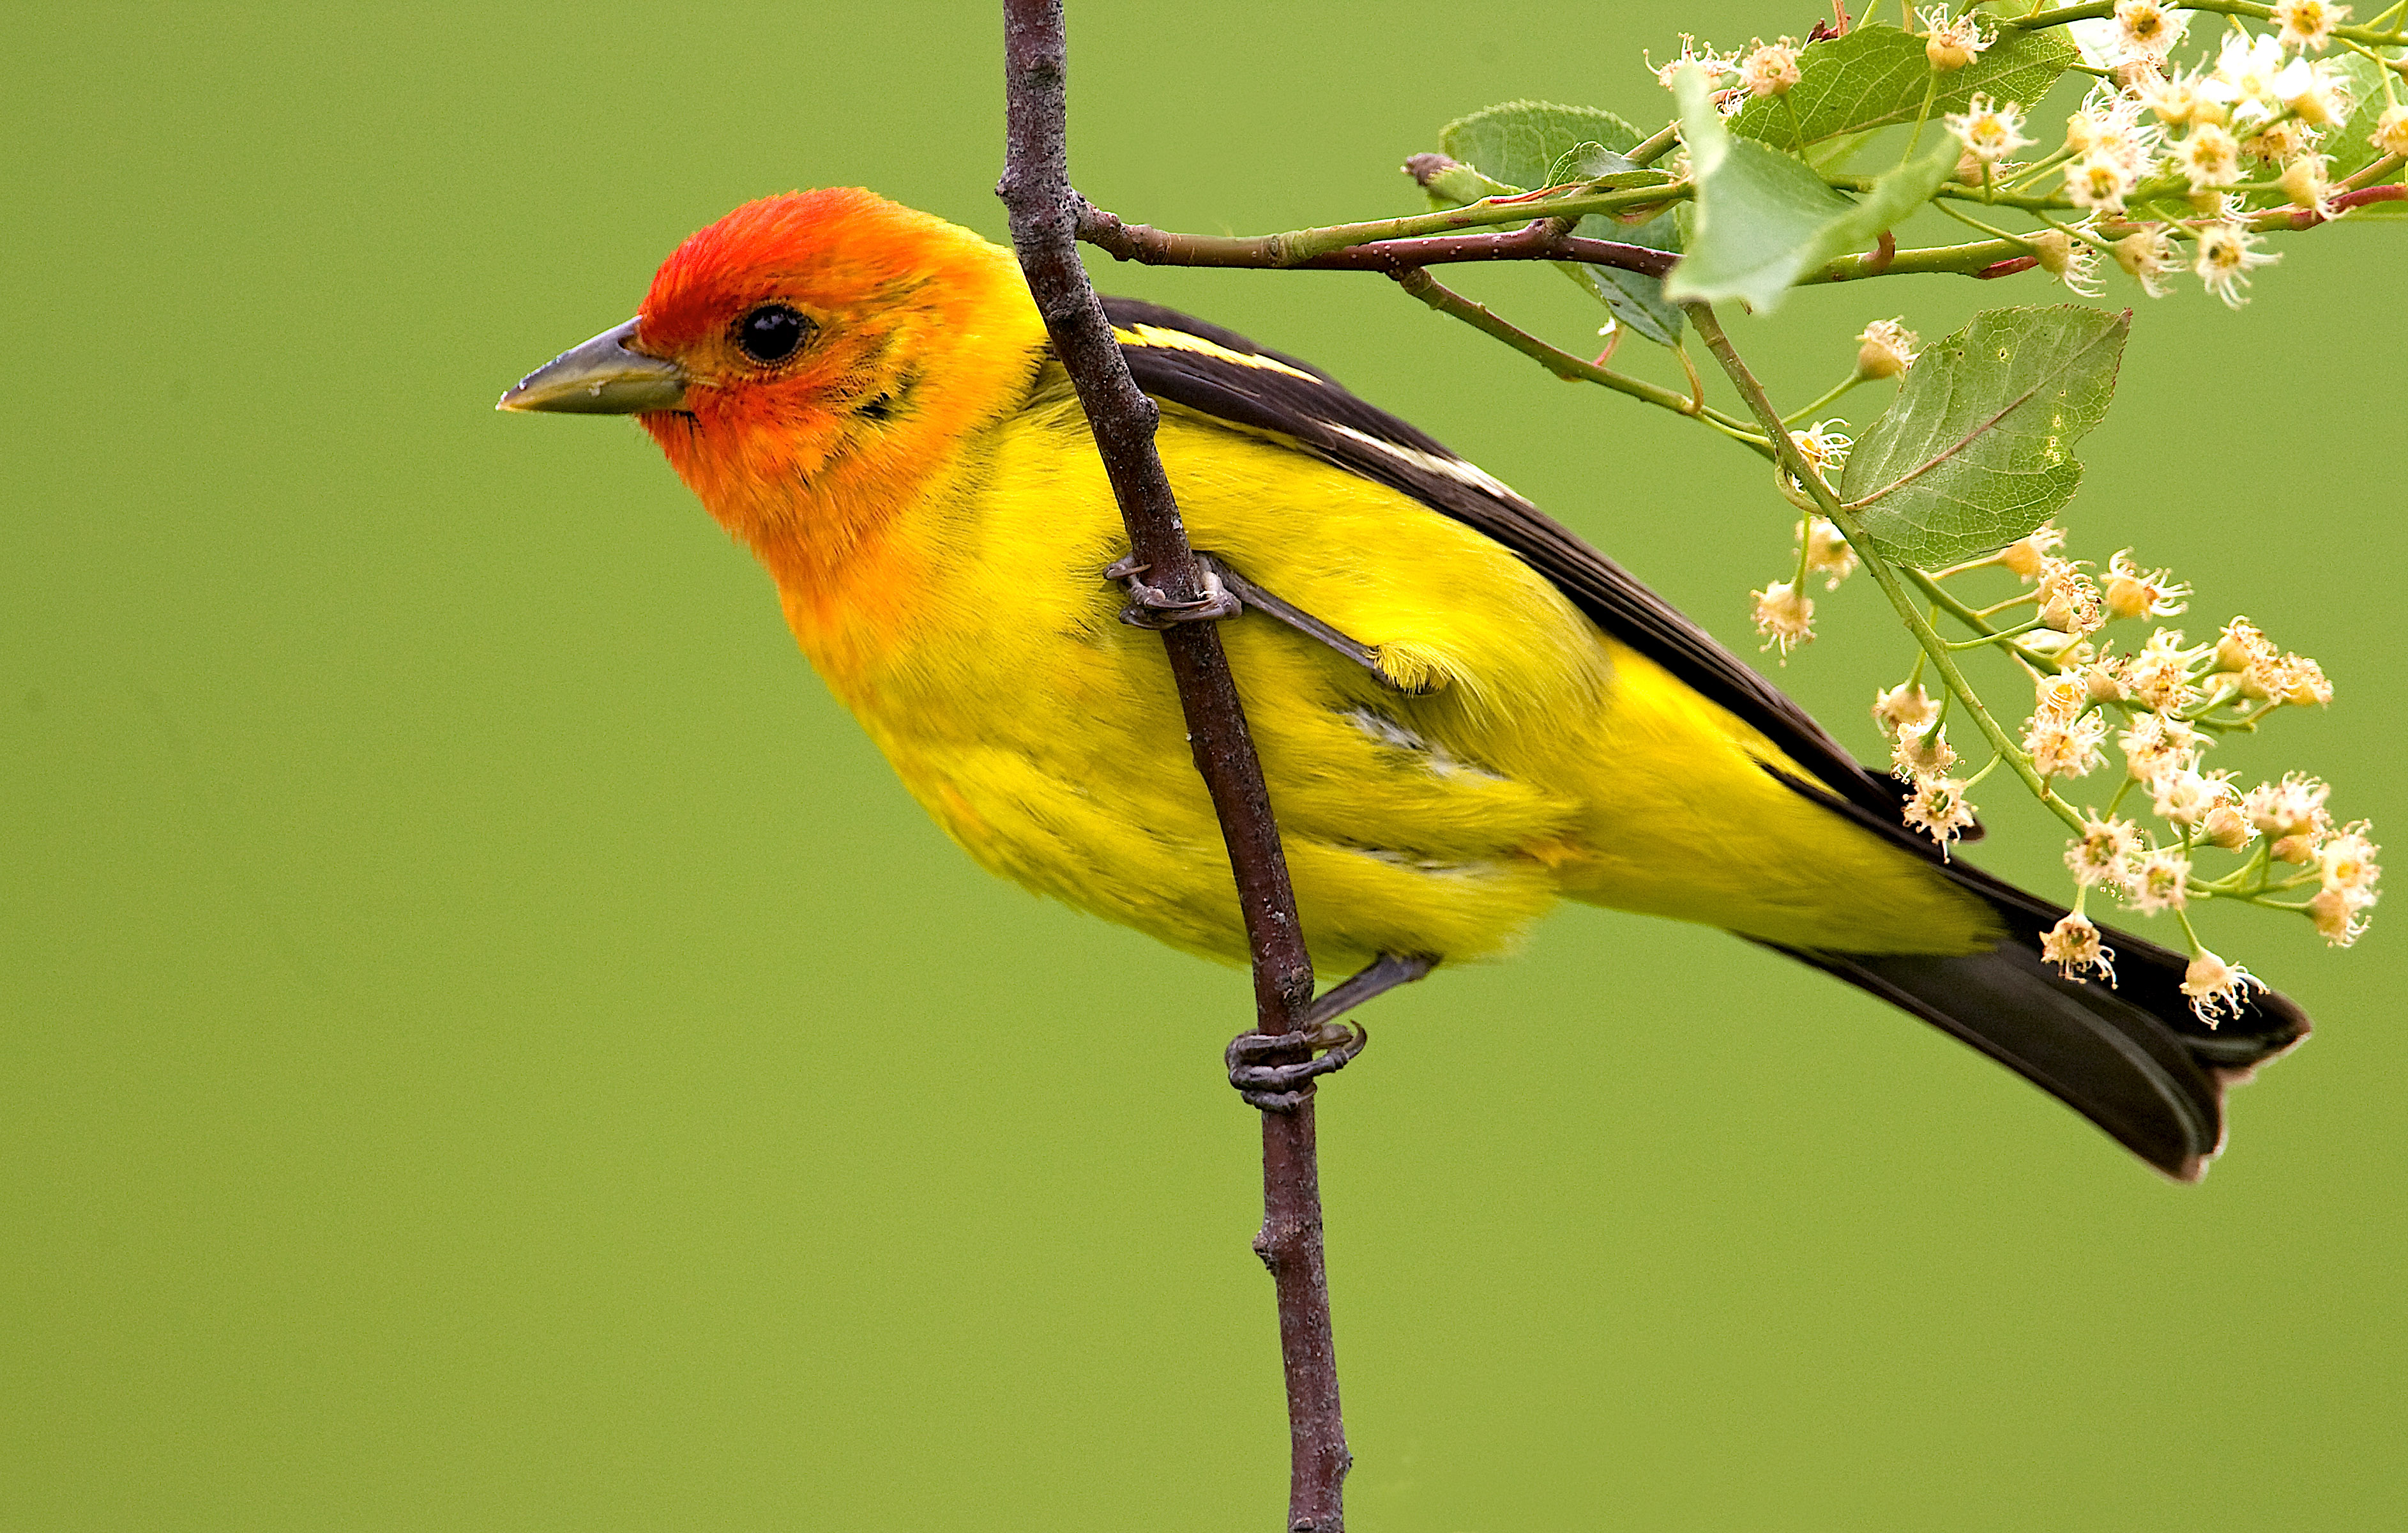 Backyard Wildlife Color Of The Week Yellow The National